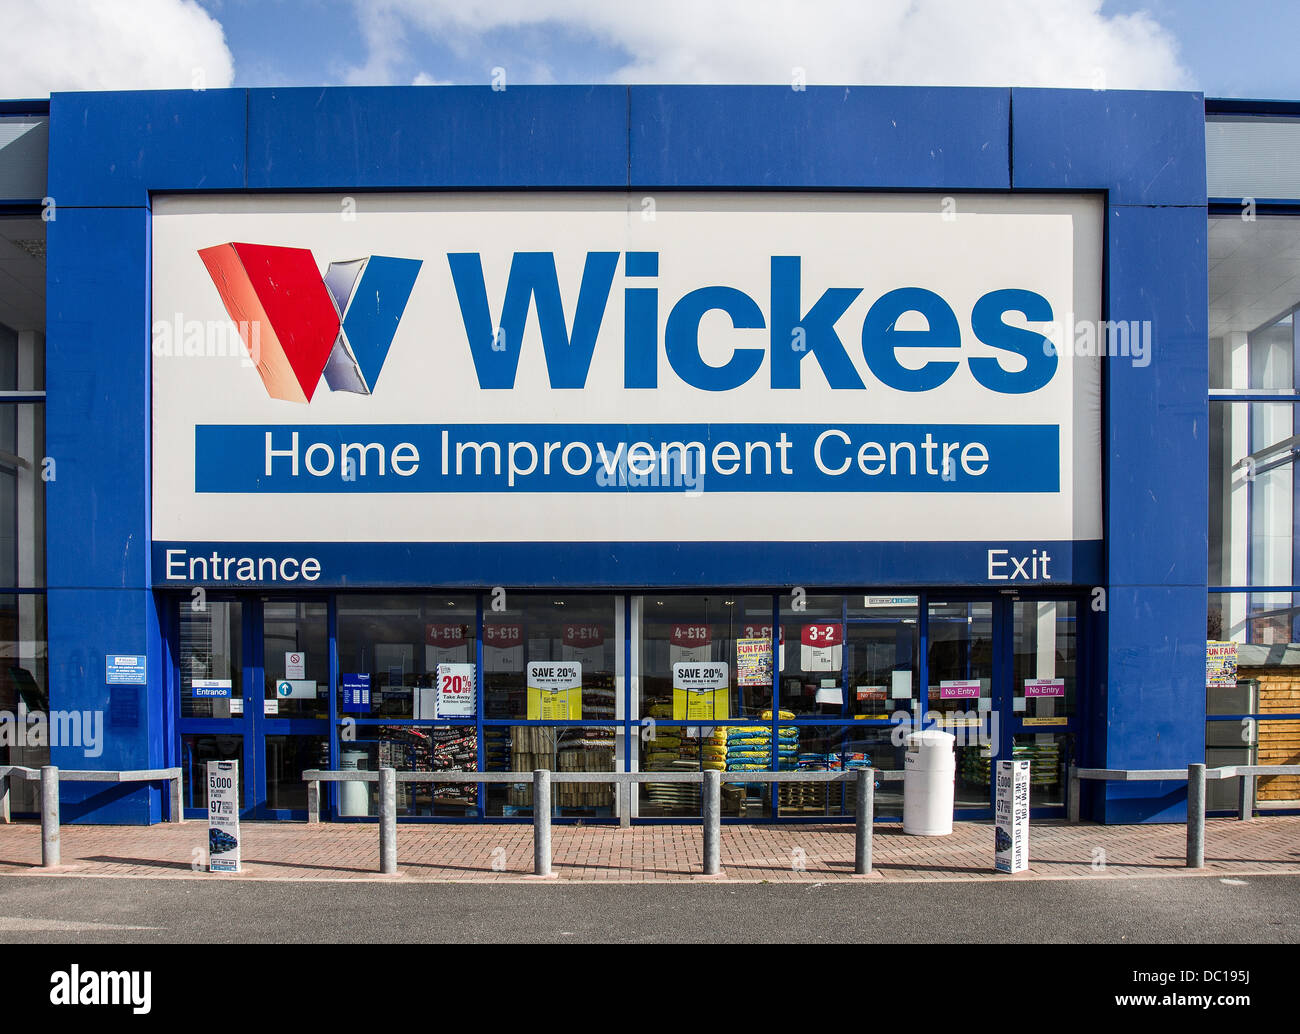 Wickes Home Improvement Centre Stock Photos & Wickes Home ...